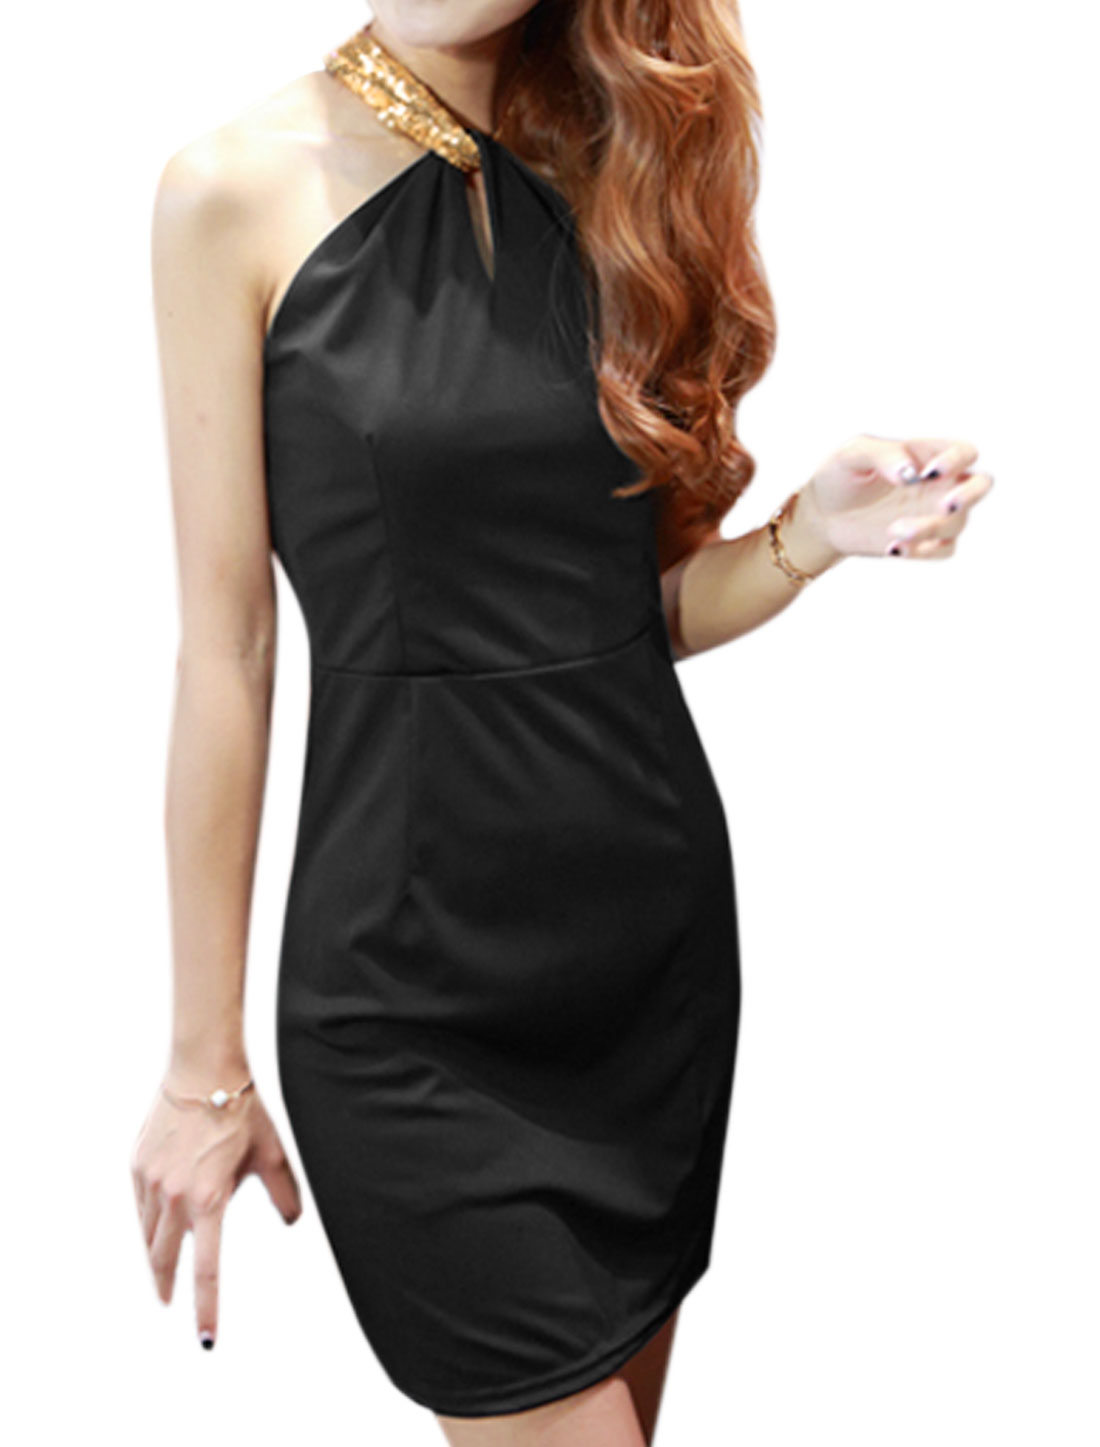 Woman Halter Neck Sequined Cut Out Back Sheath Dress Black M